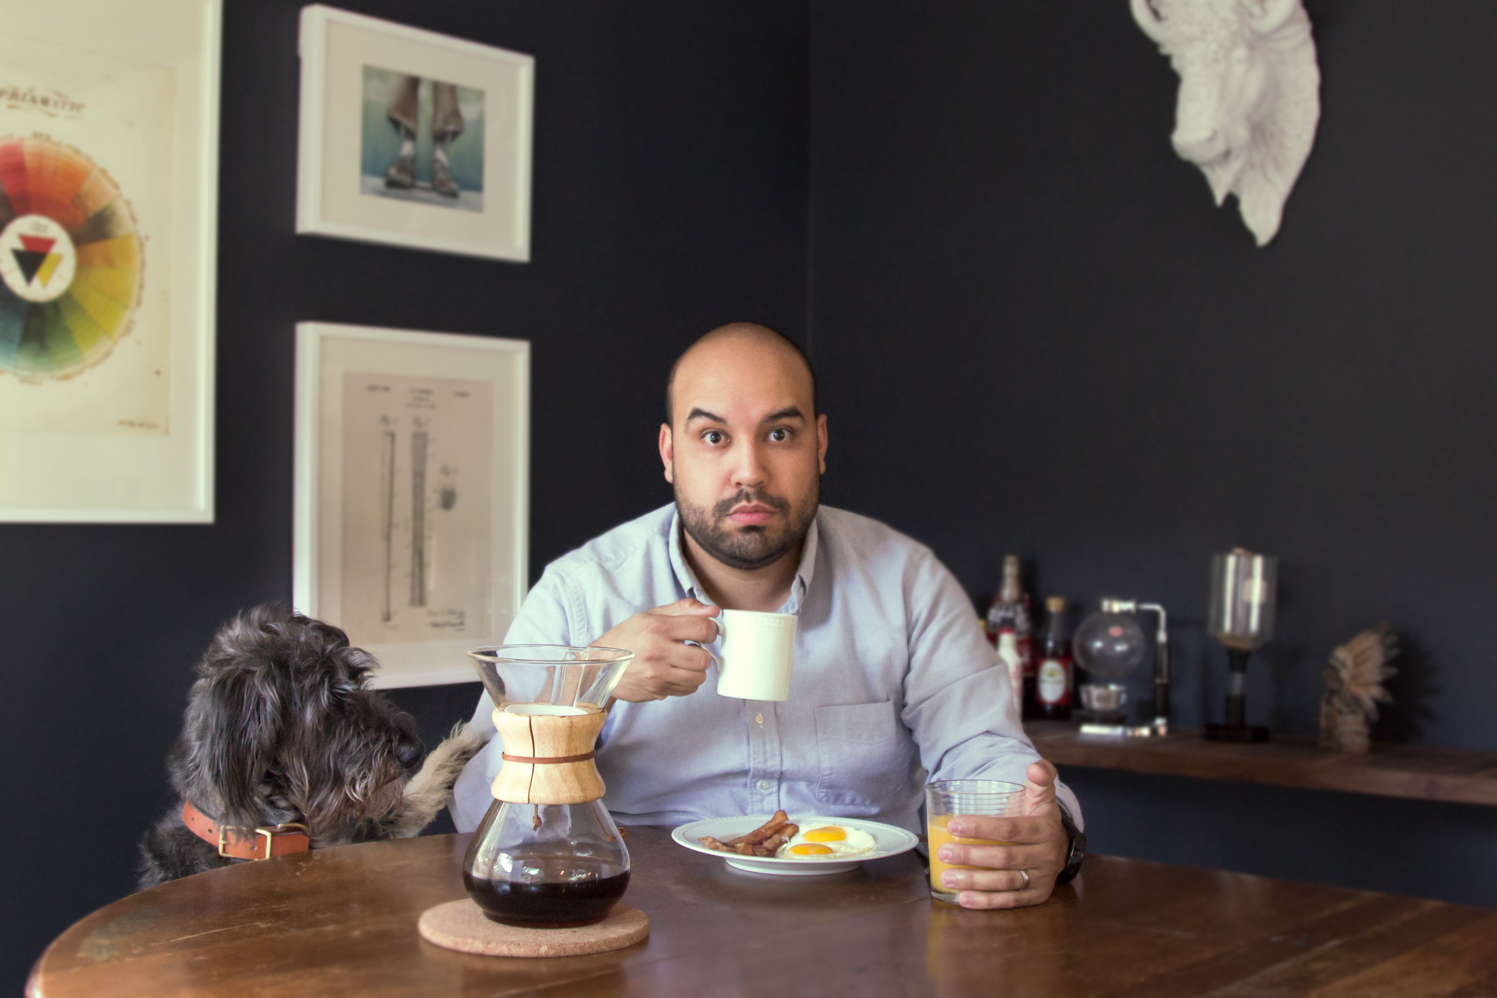 Ben Hernandez @ivebenthinking Senior Product Designer at Dialexa I try to start each day right: bacon eggs, coffee, orange juice, and a reminder of failed dog training.